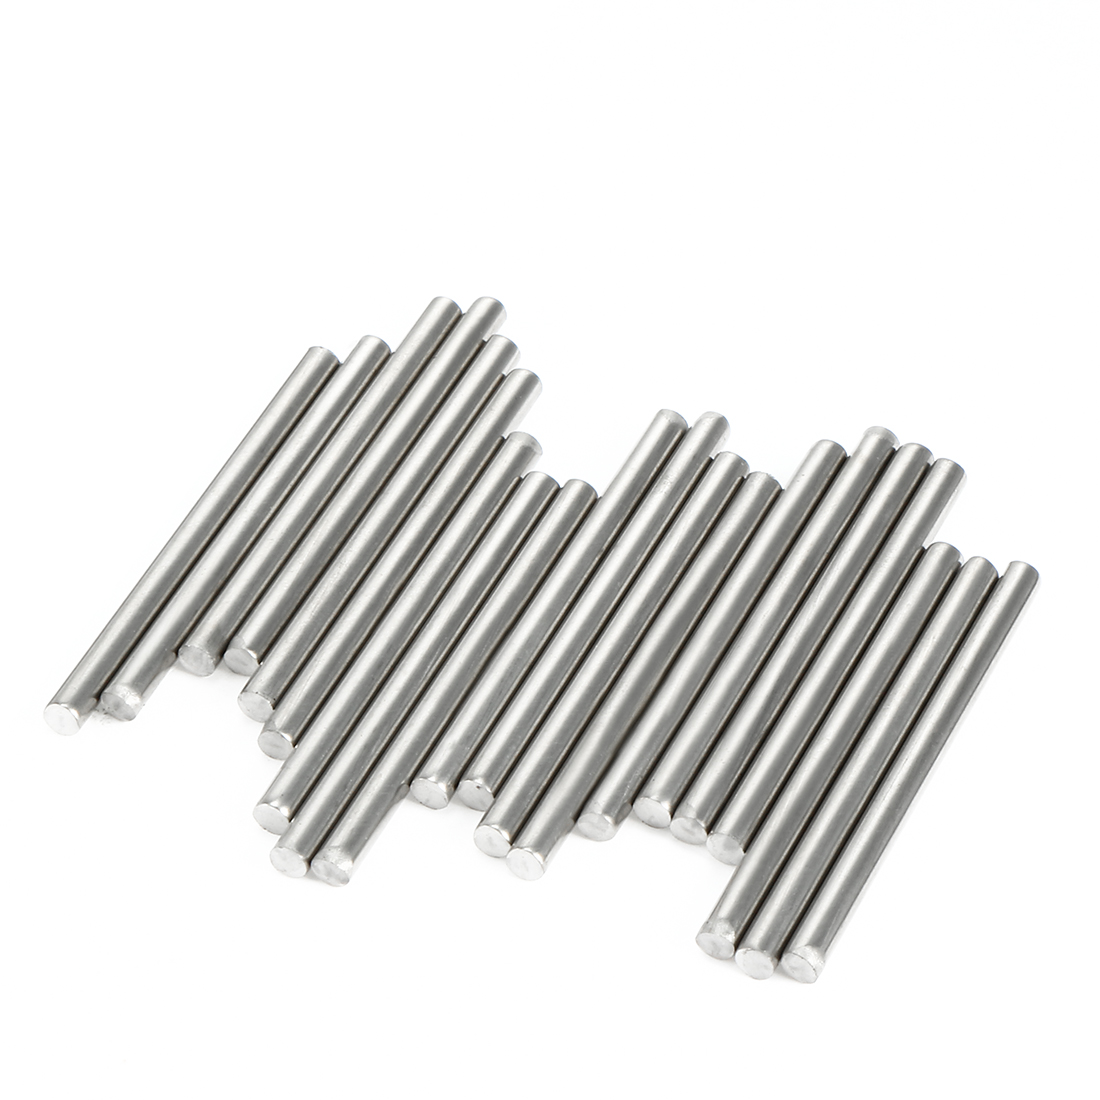 20pcs Round Shaft Rods Axles 304 Stainless Steel 3mm x 45mm for RC Toy Car